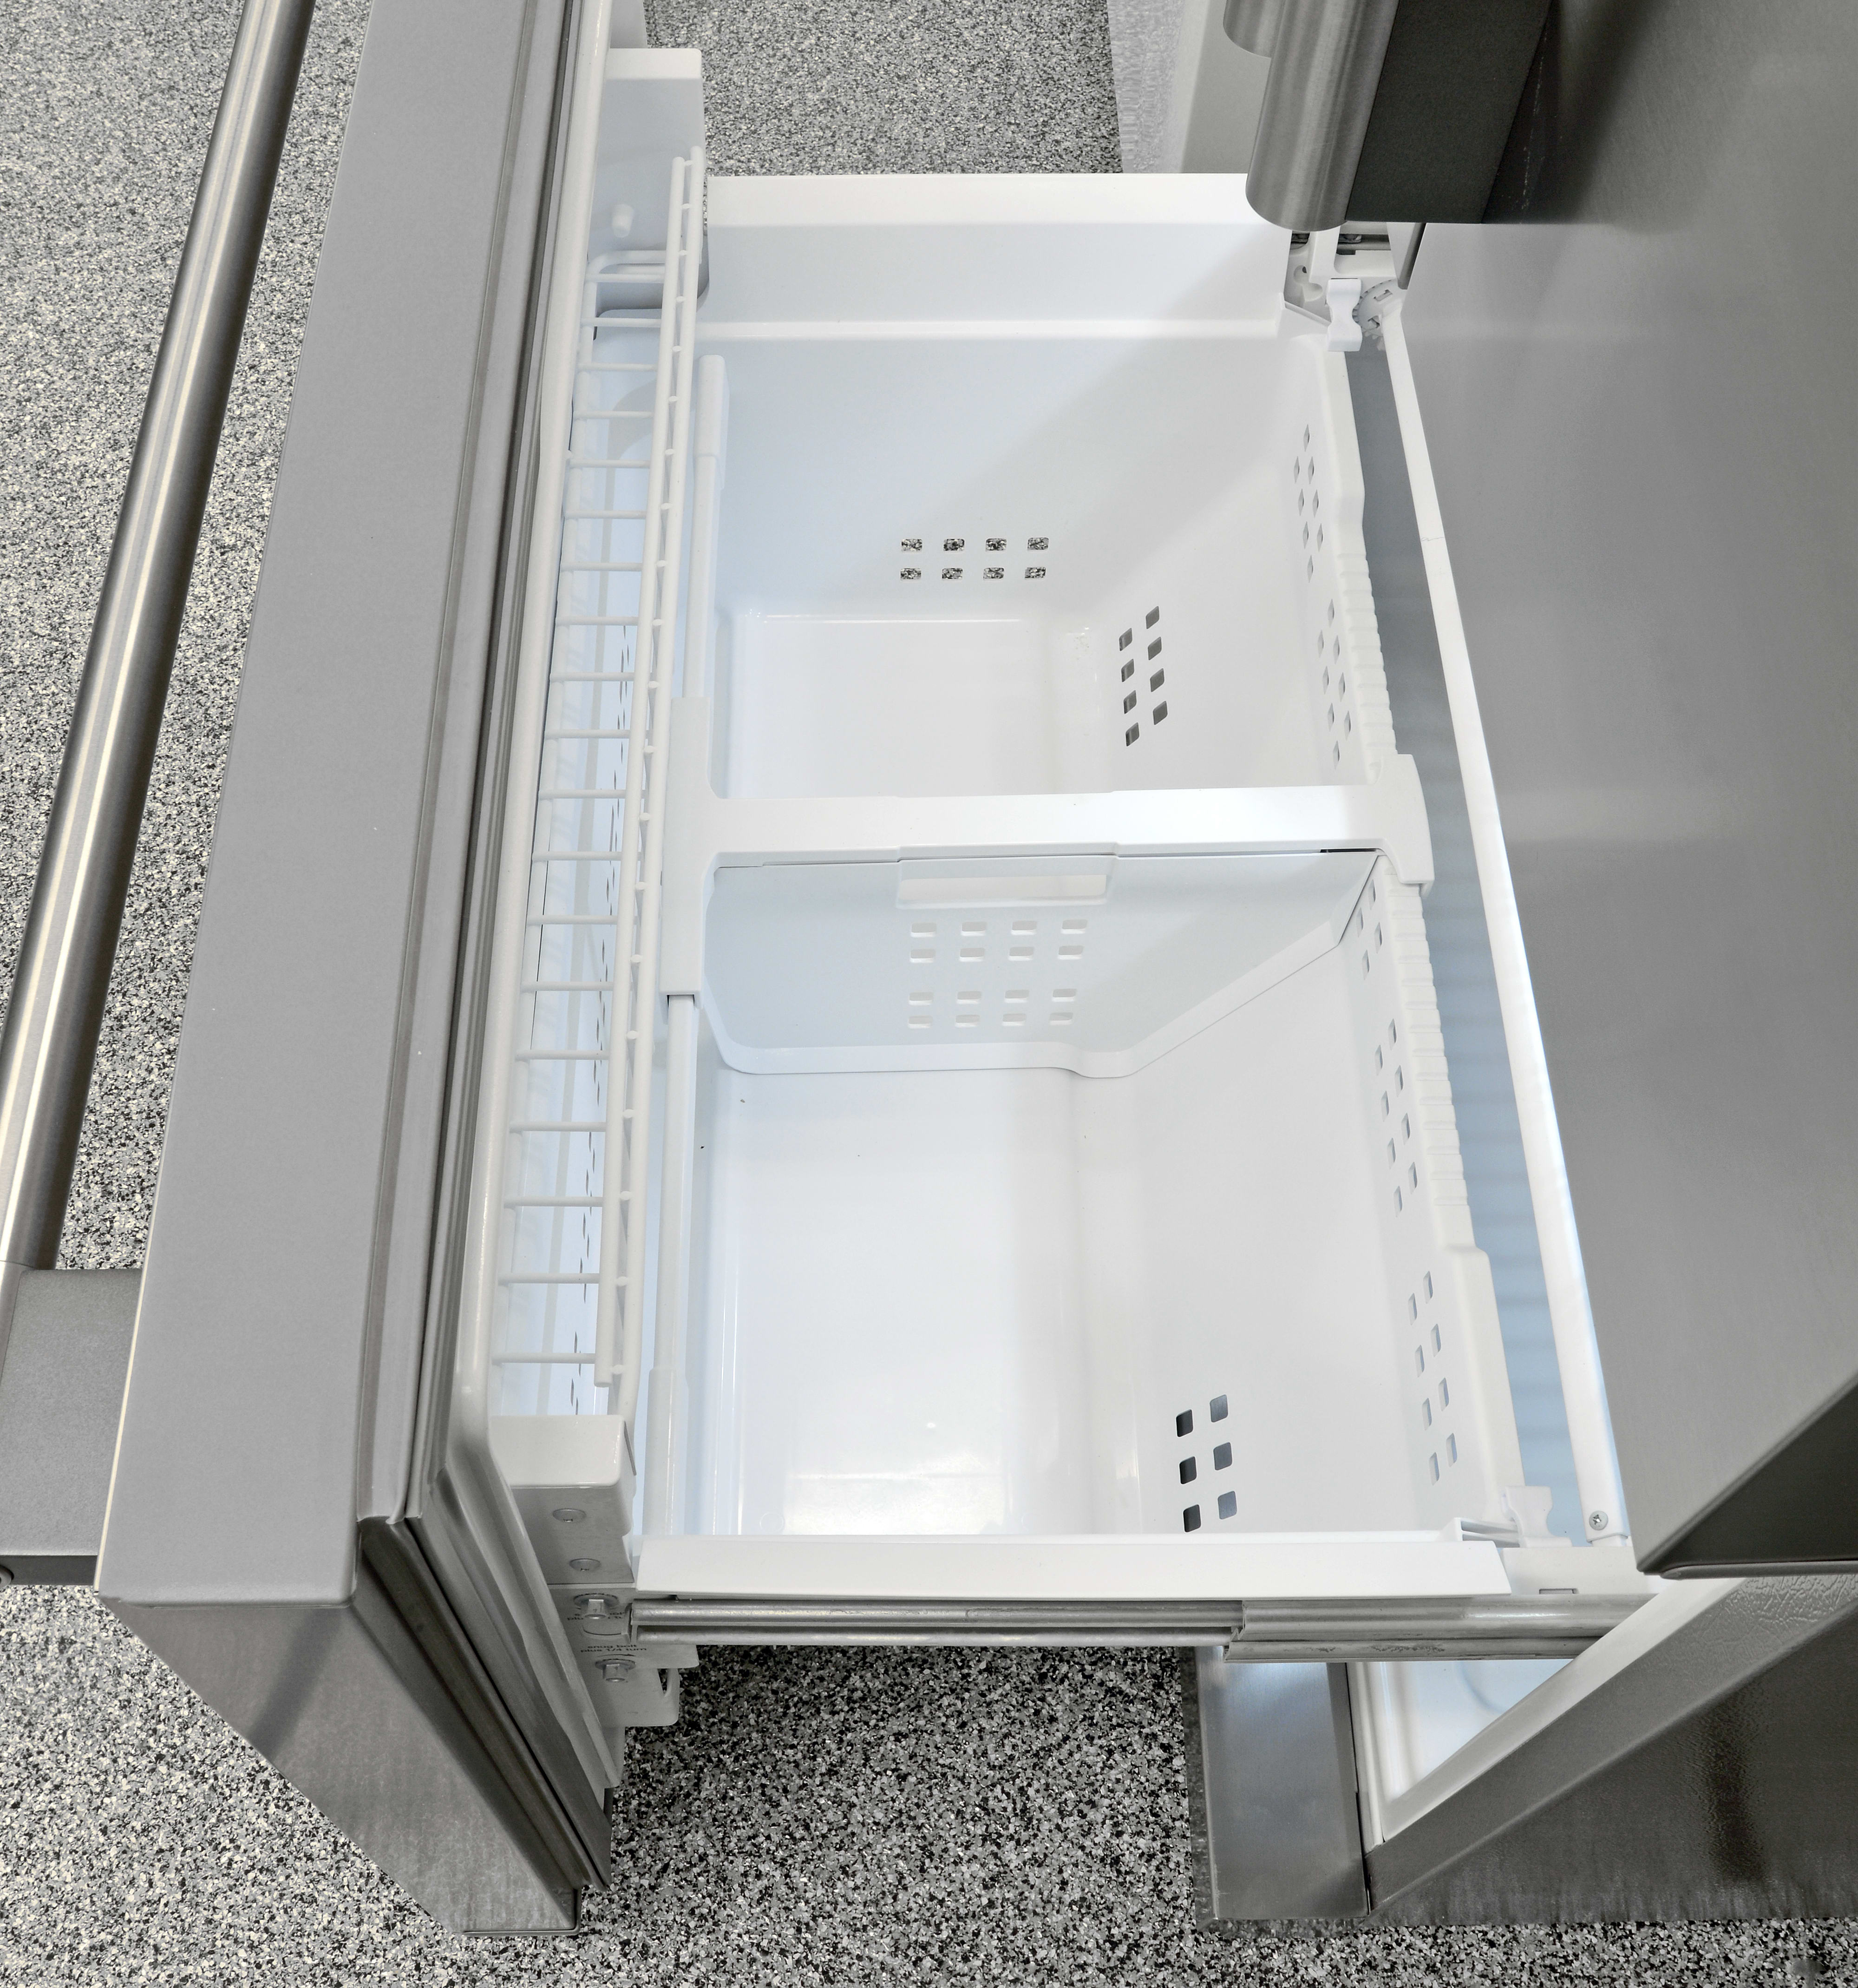 The divider found in the bottom section of the Frigidaire Professional FPBC2277RF's freezer is adjustable. Also, notice the small shelf just inside the door.